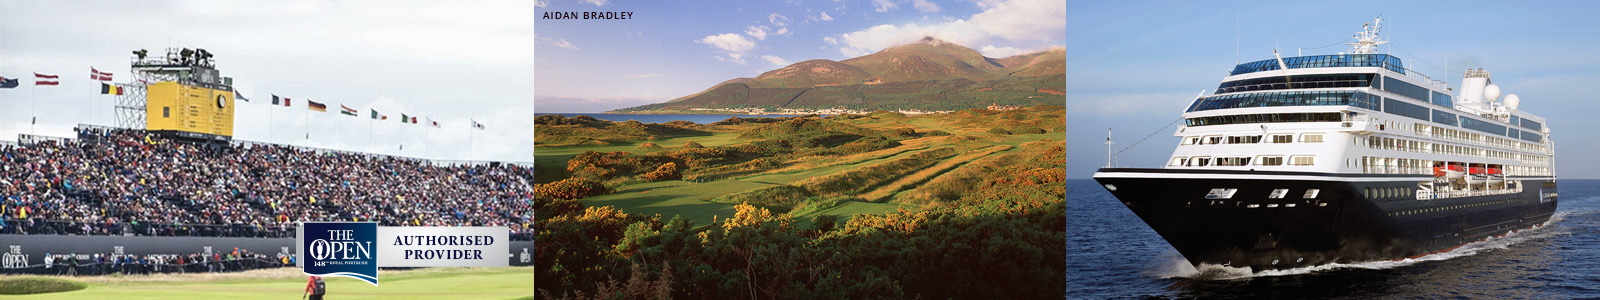 British Open  Golf Tours and Golf Cruises